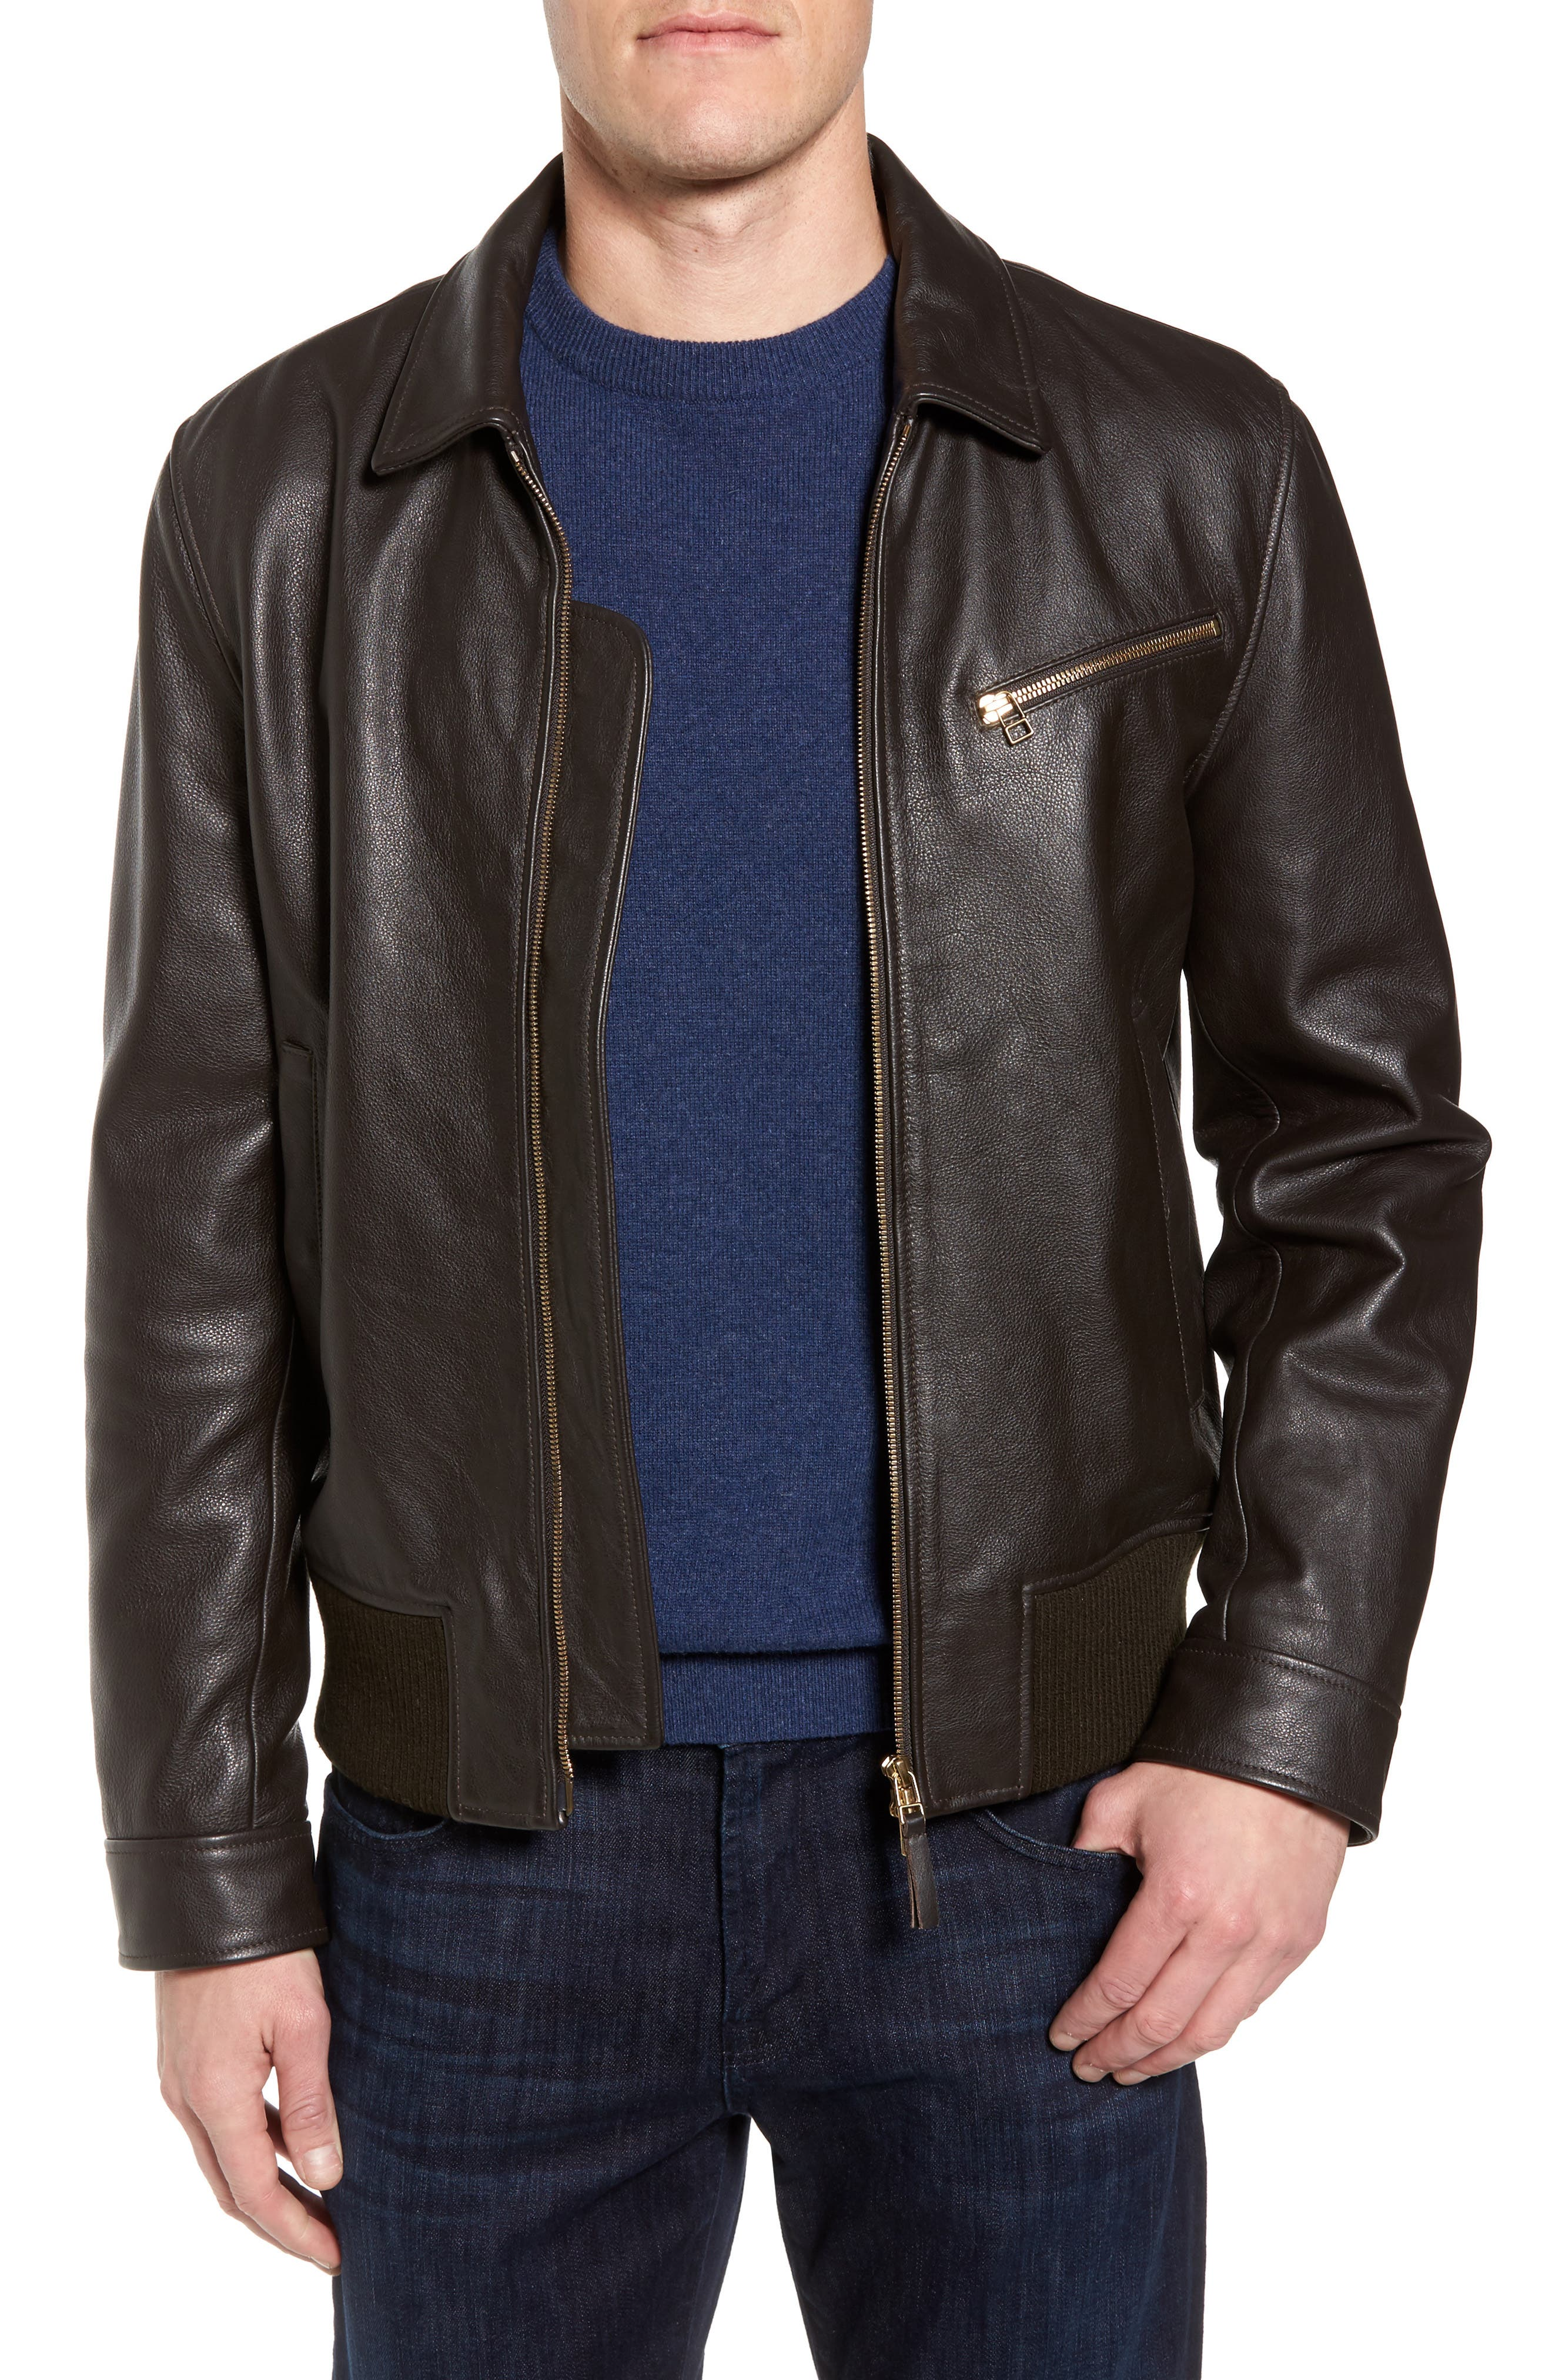 Year Round Leather Jacket,                             Main thumbnail 1, color,                             Espresso Brown